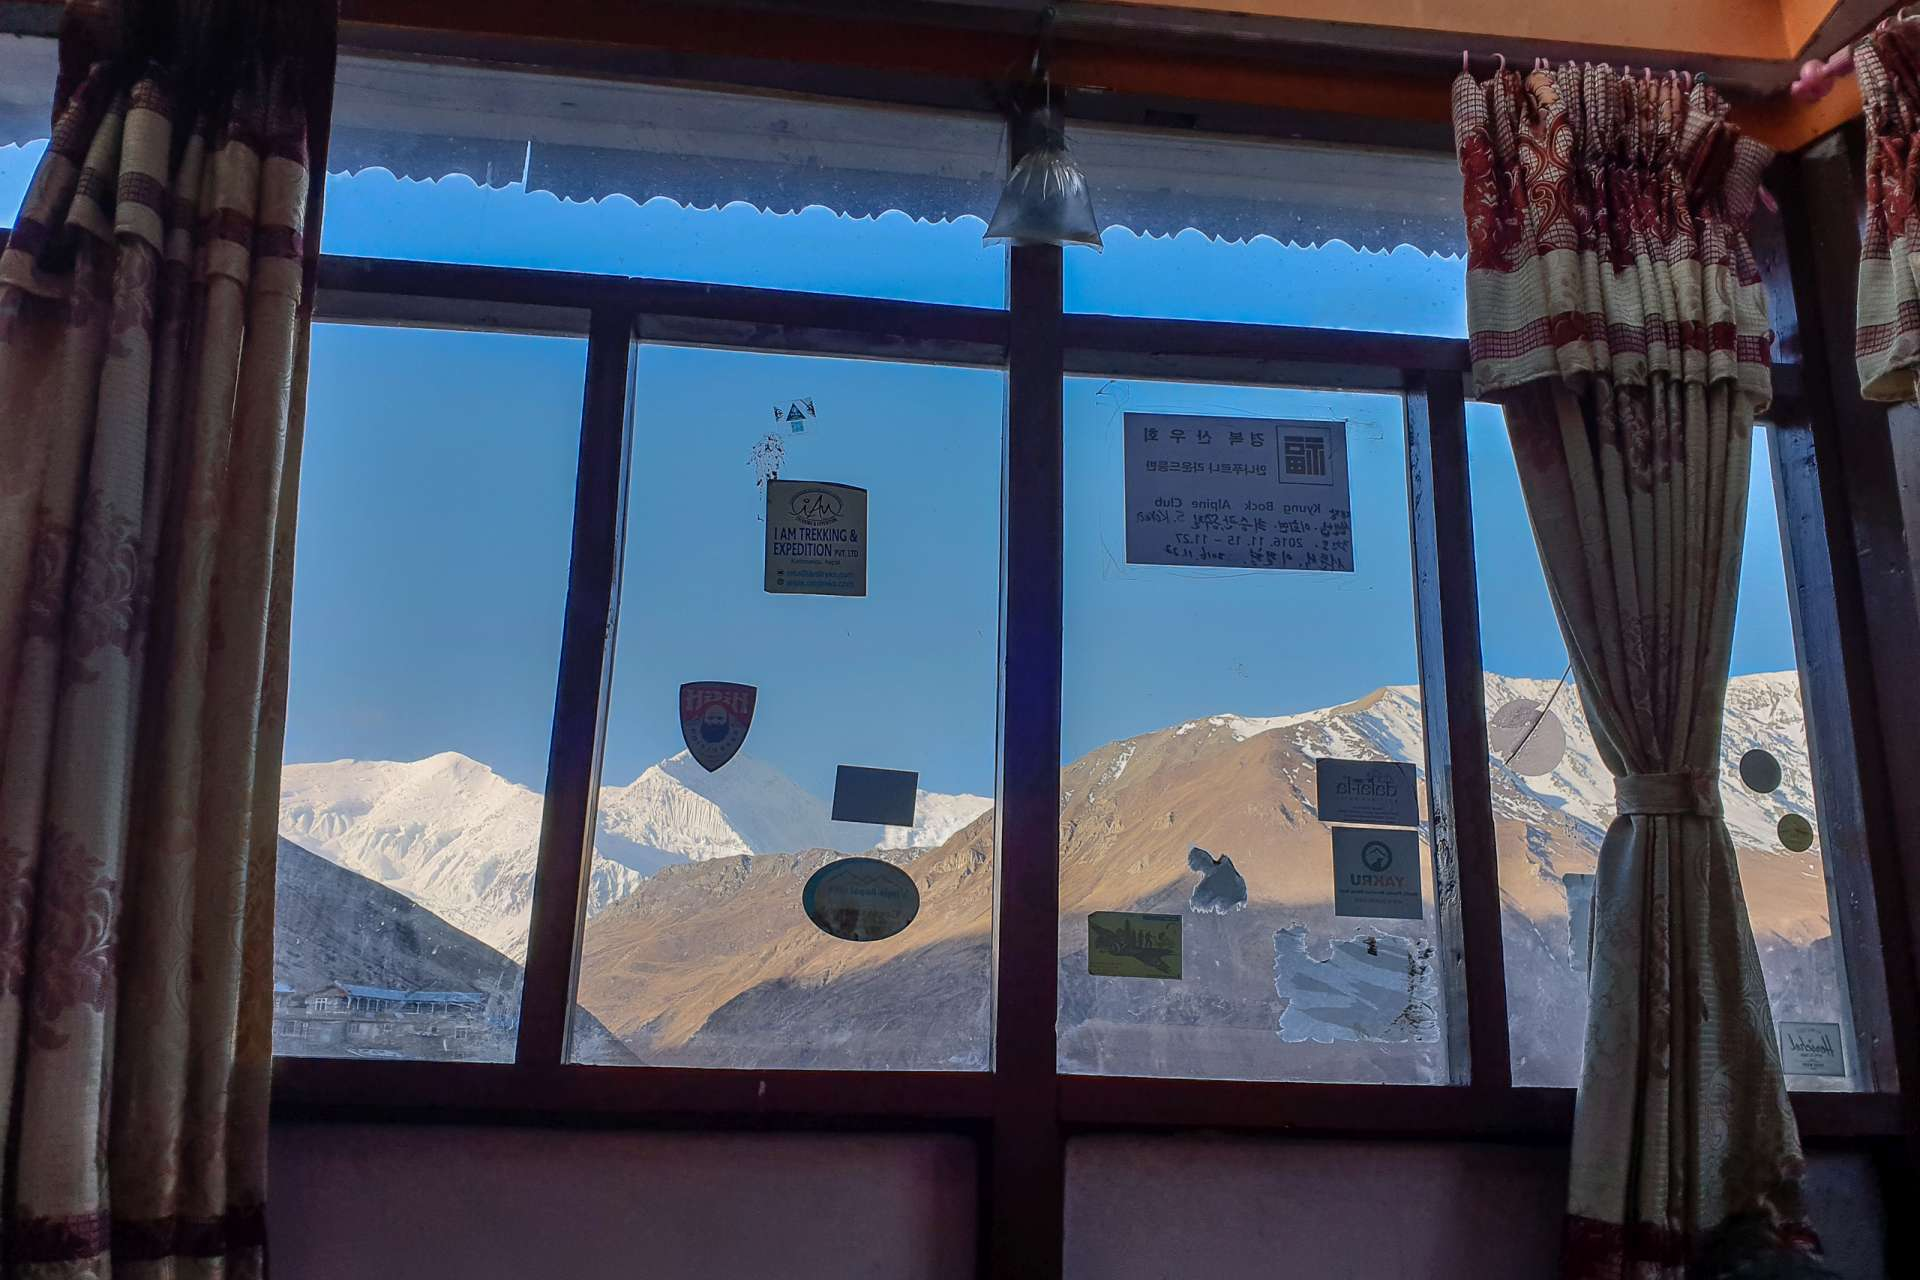 Nepal Annapurna Circuit trekking window view